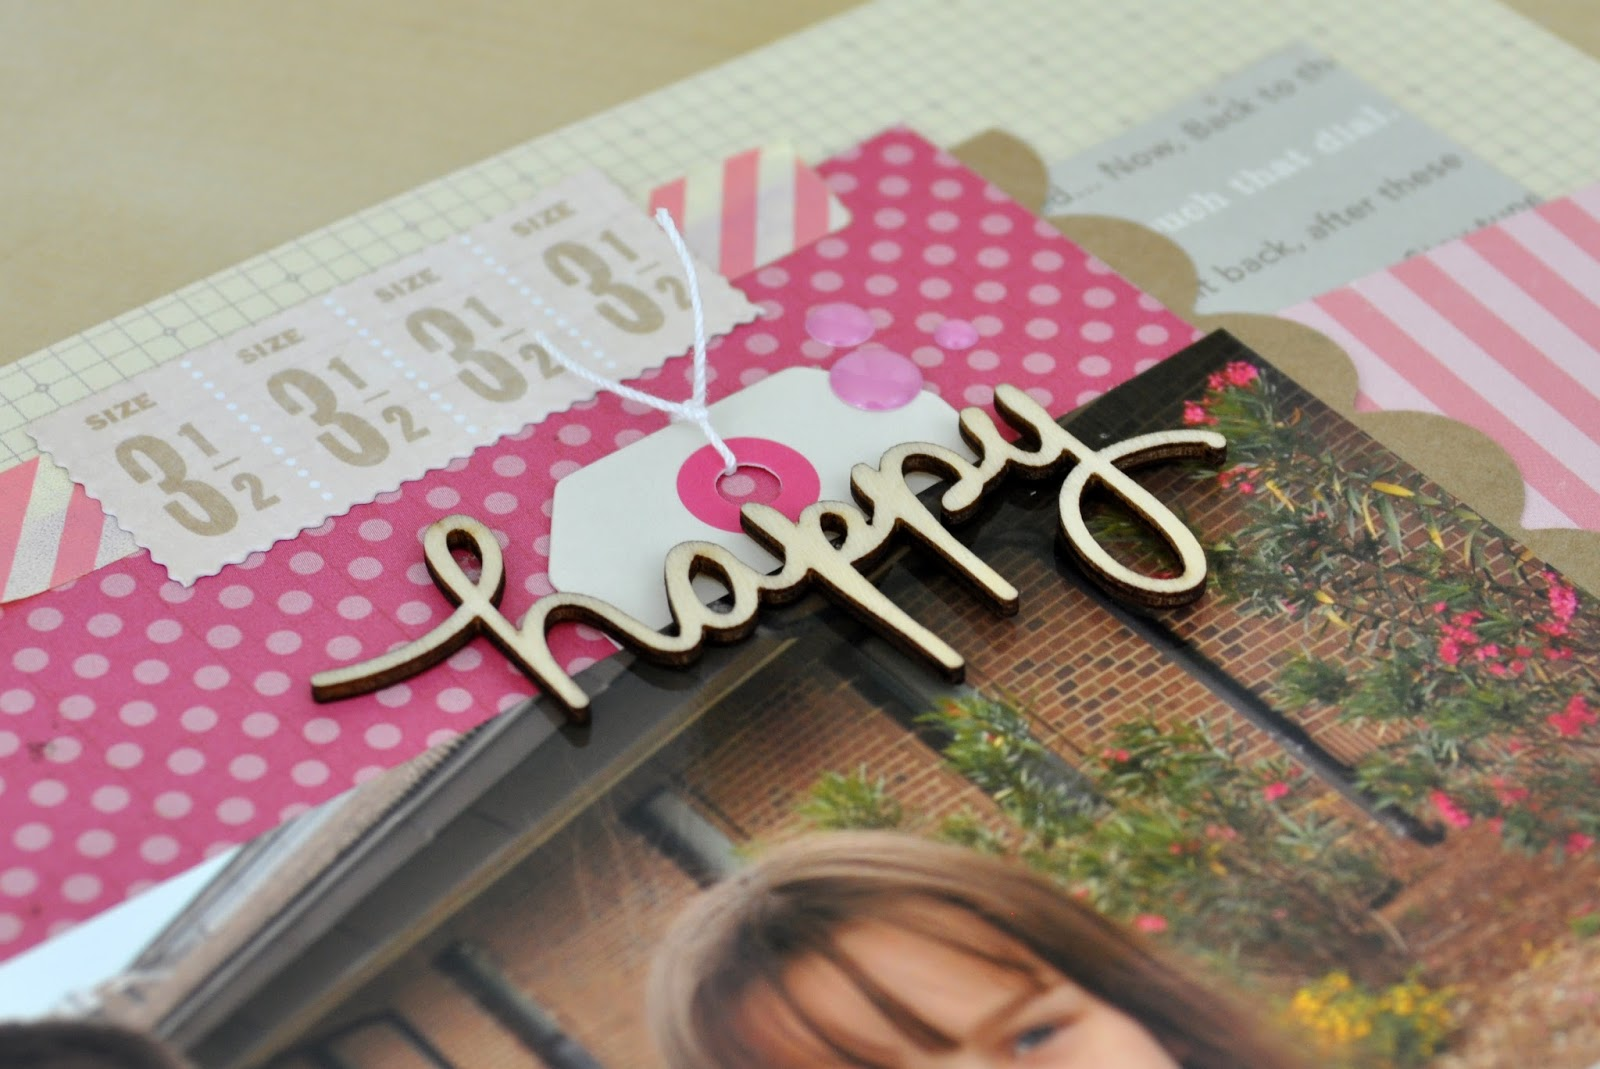 Happy Memories Made Scrapbooking Process Video by Jen Gallacher on www.jengallacher.com